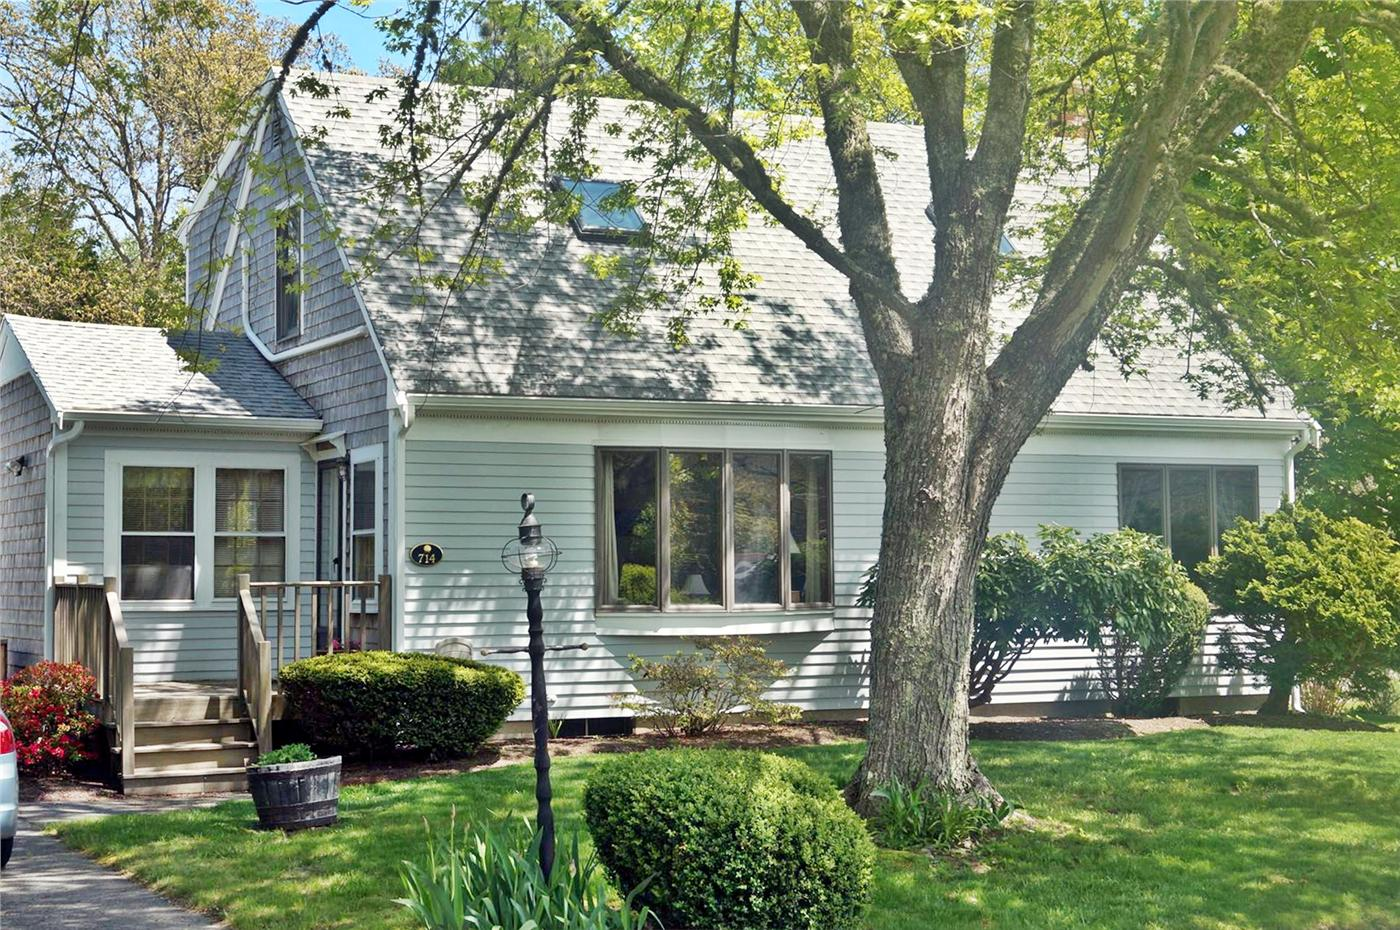 Chatham vacation rental home in cape cod ma 02633 id 6136 for Cabin rentals in cape cod ma